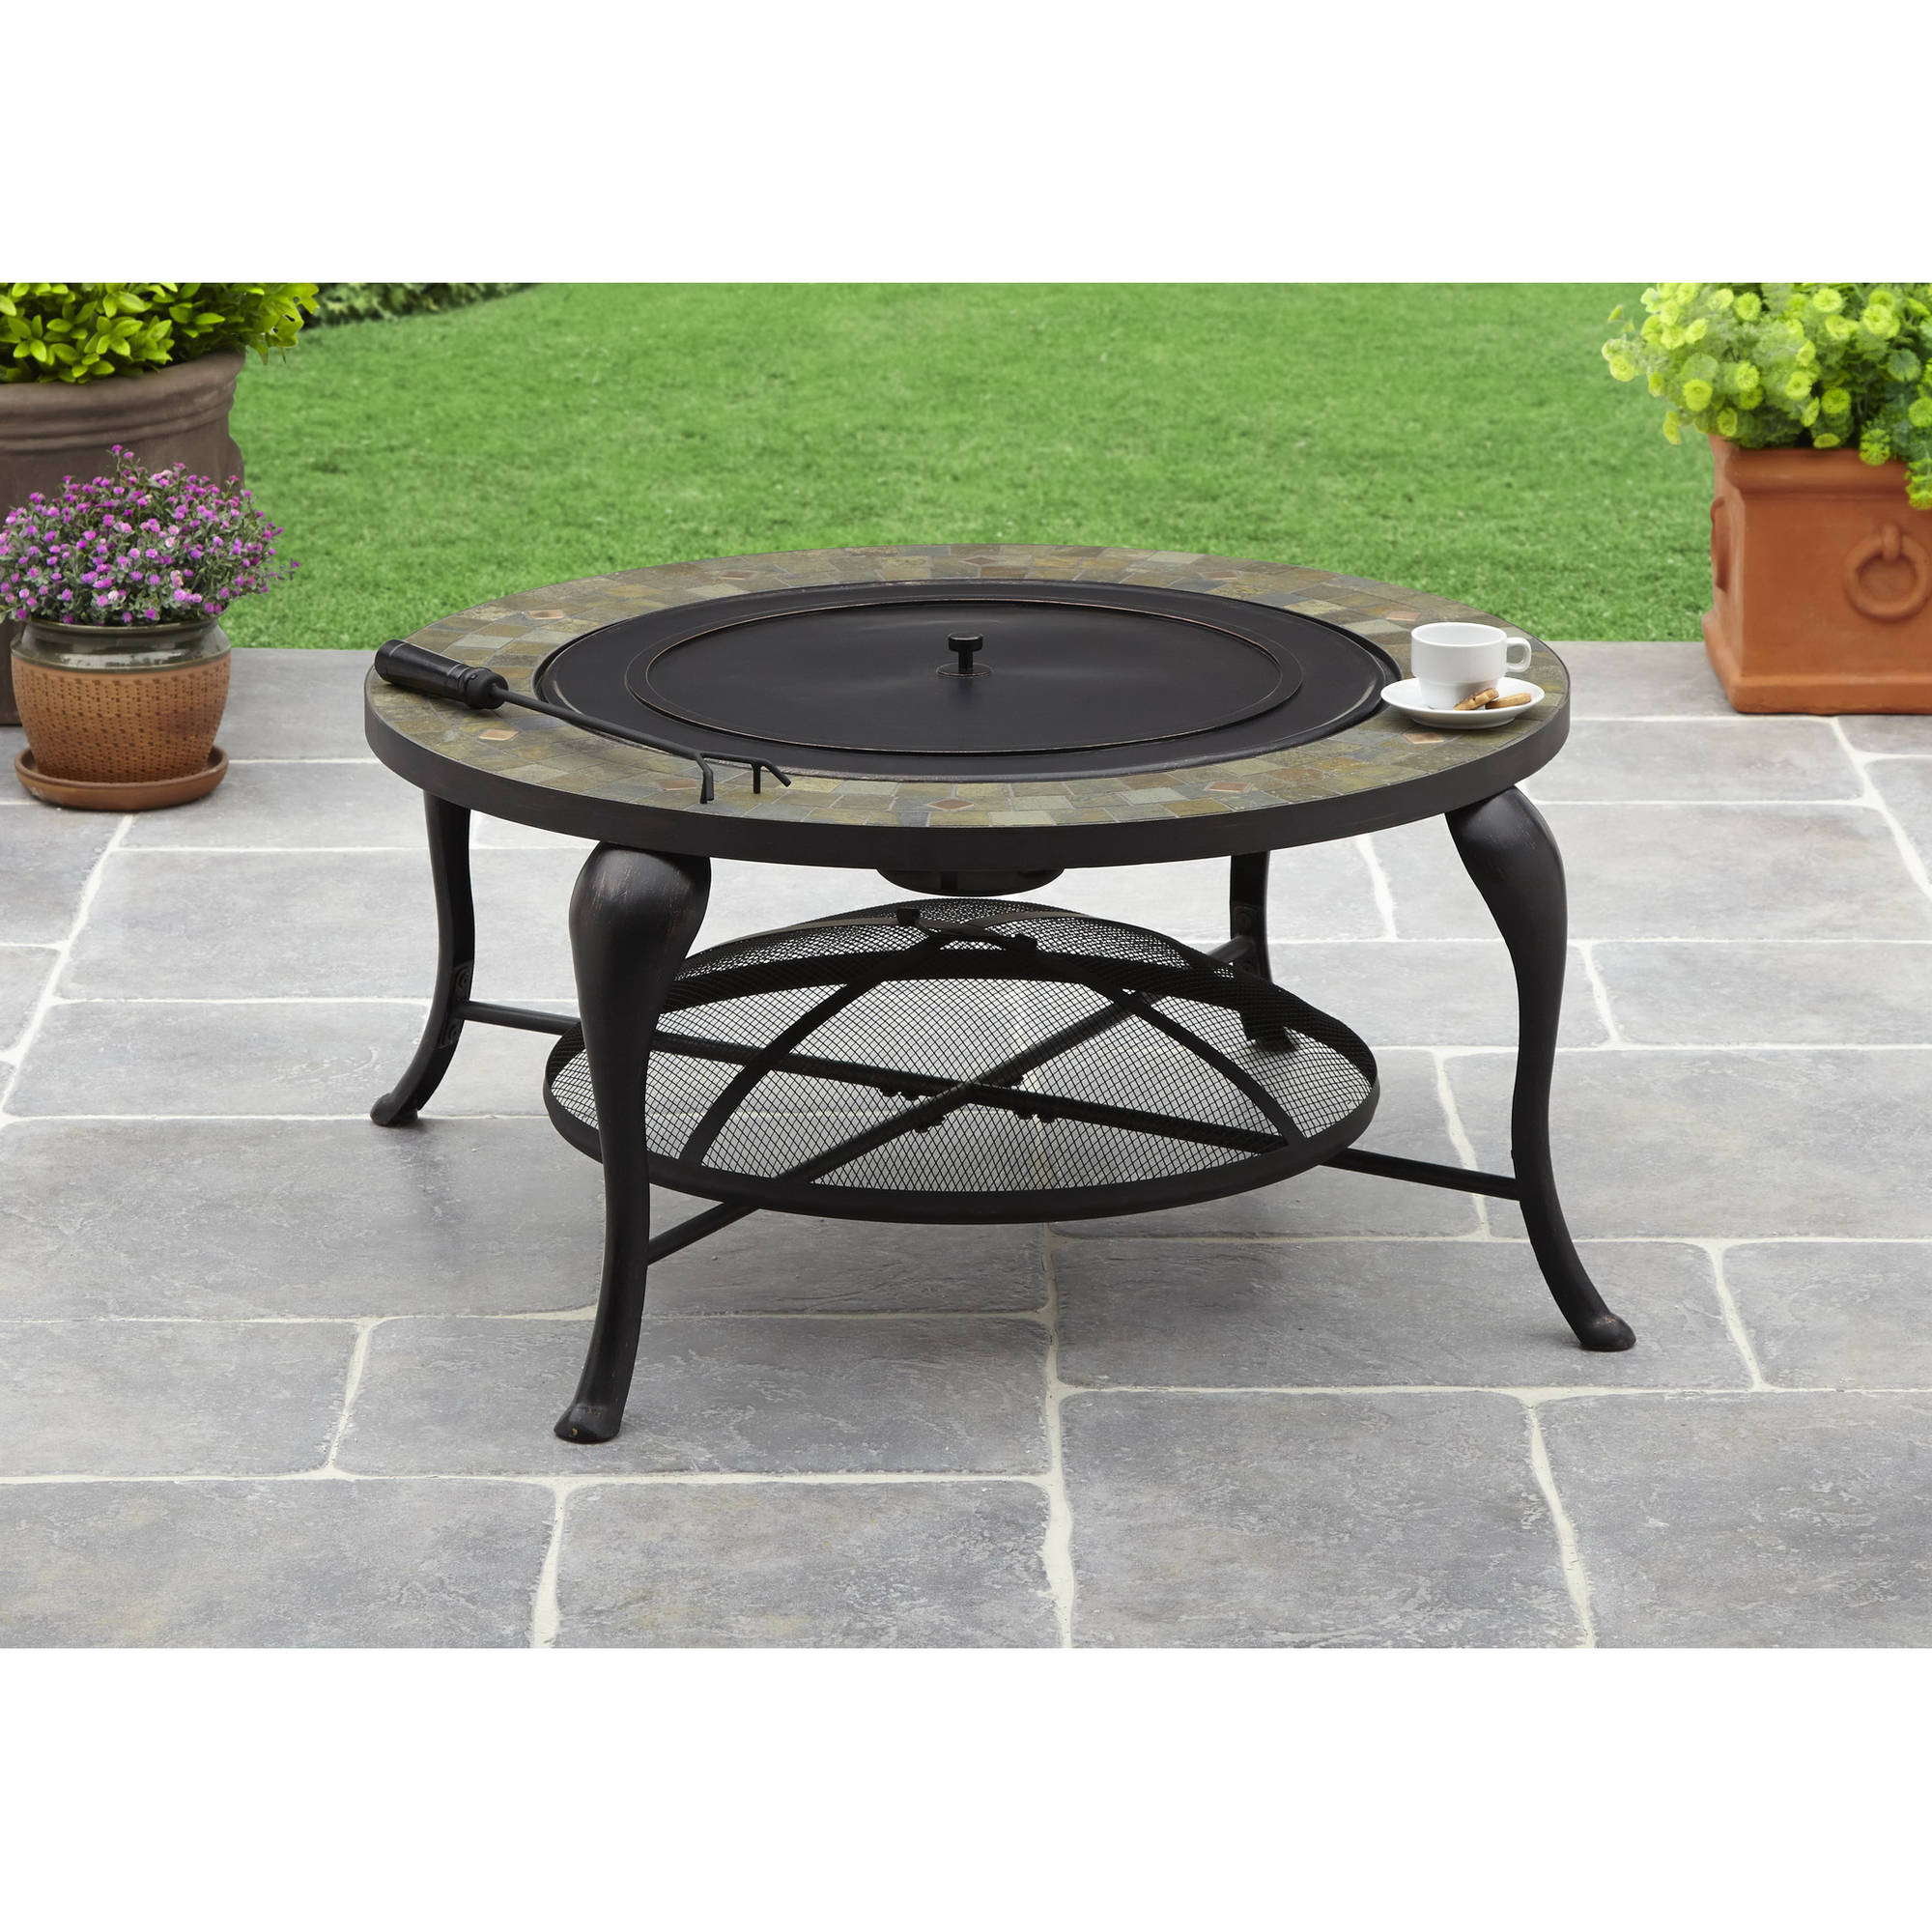 Better Homes and Gardens 35 Slate Fire Pit Walmartcom